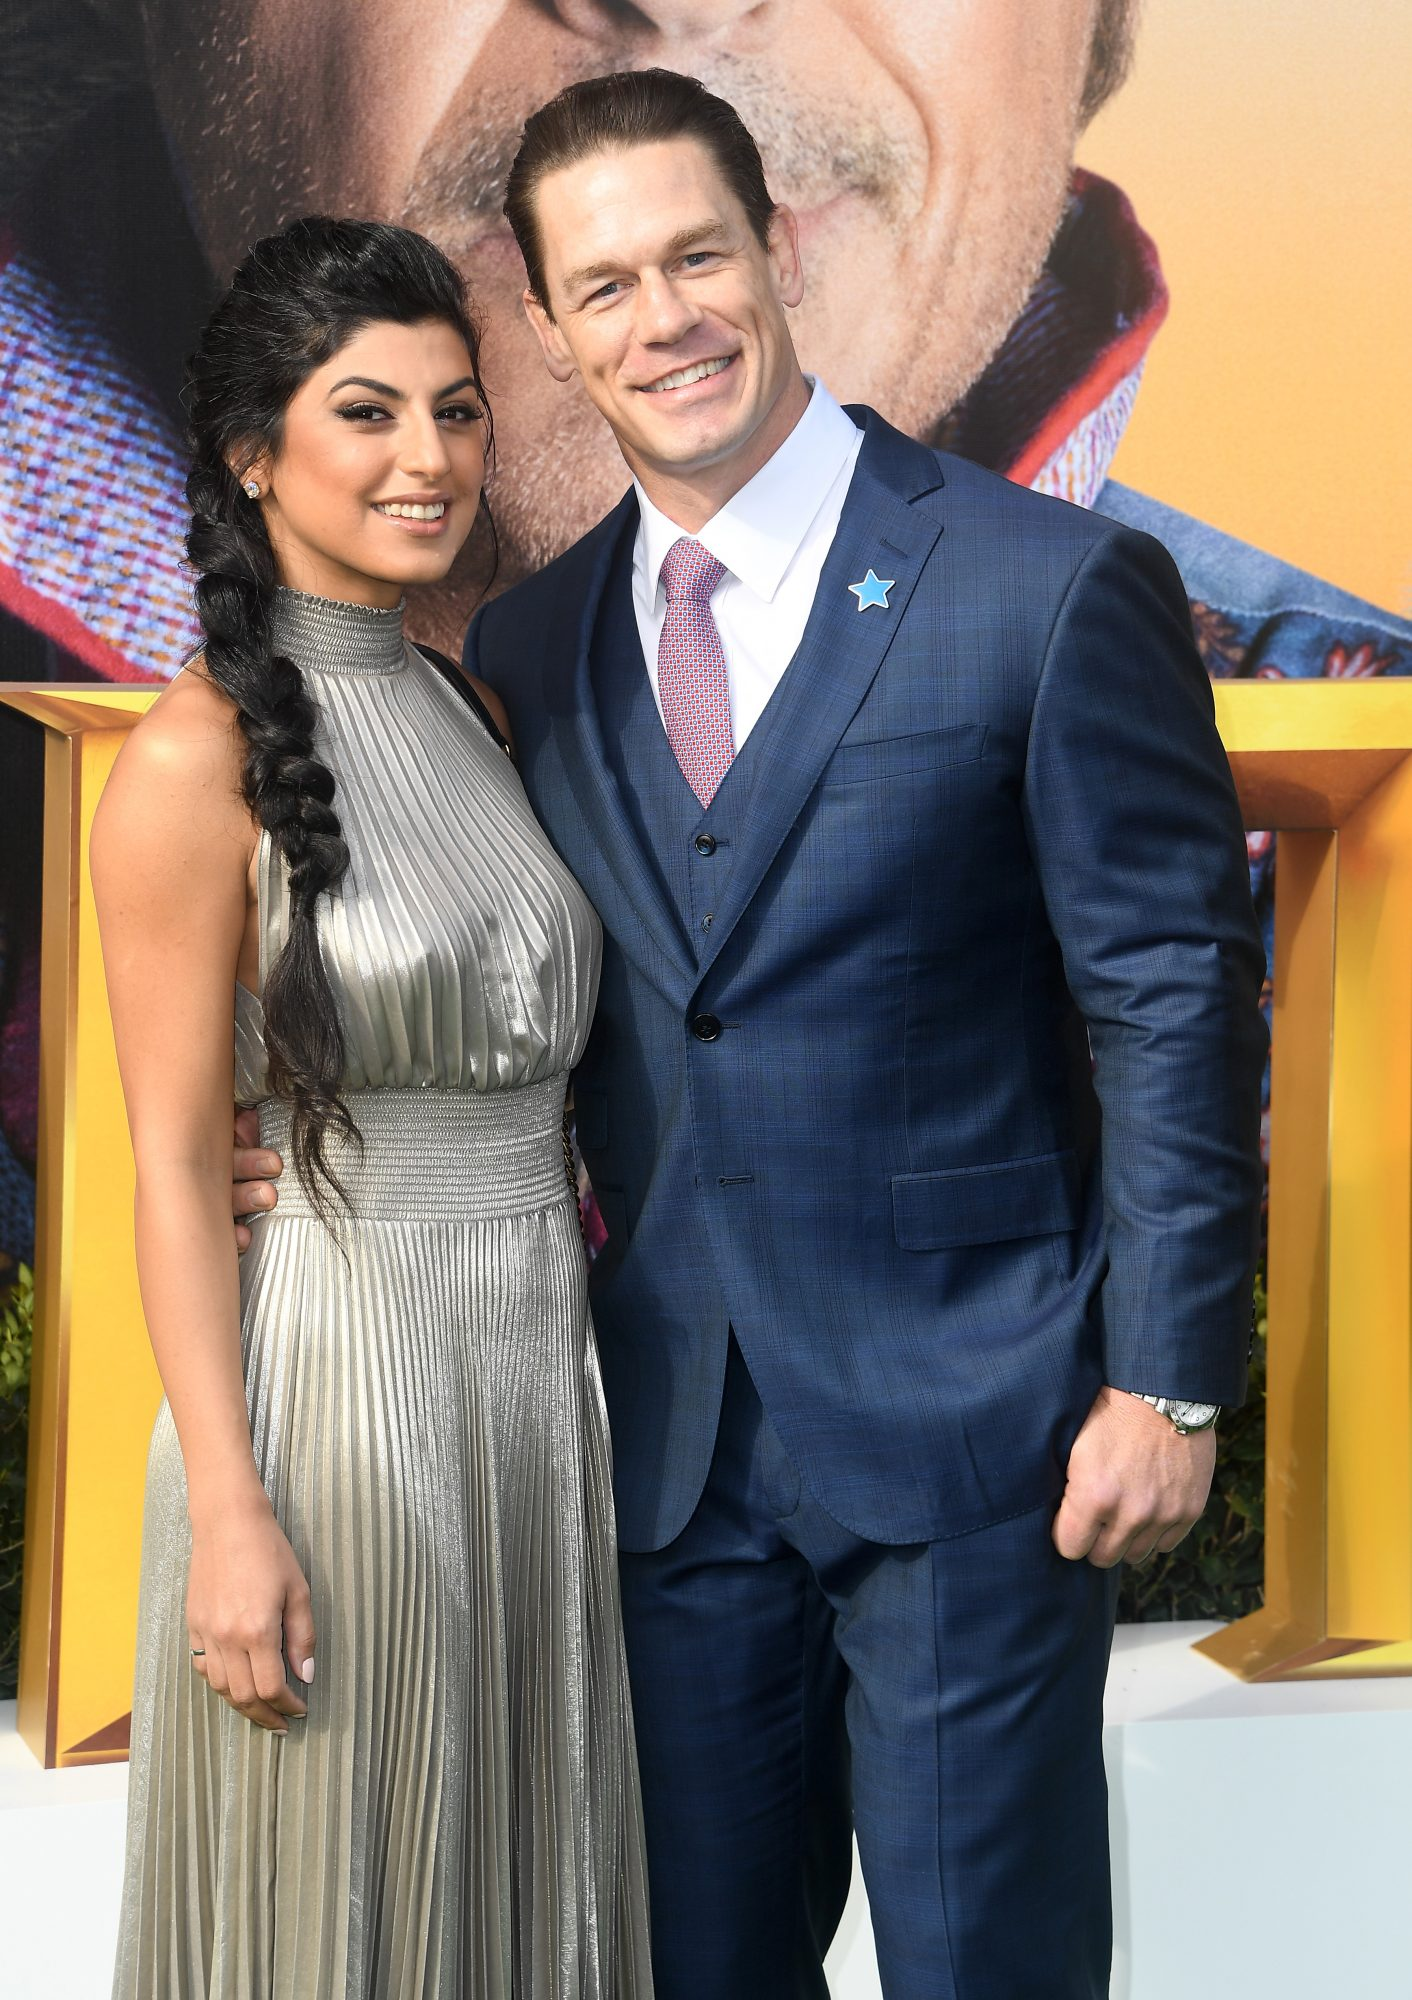 john cena and shay shariatzadeh premiere of dolittle universal pictures